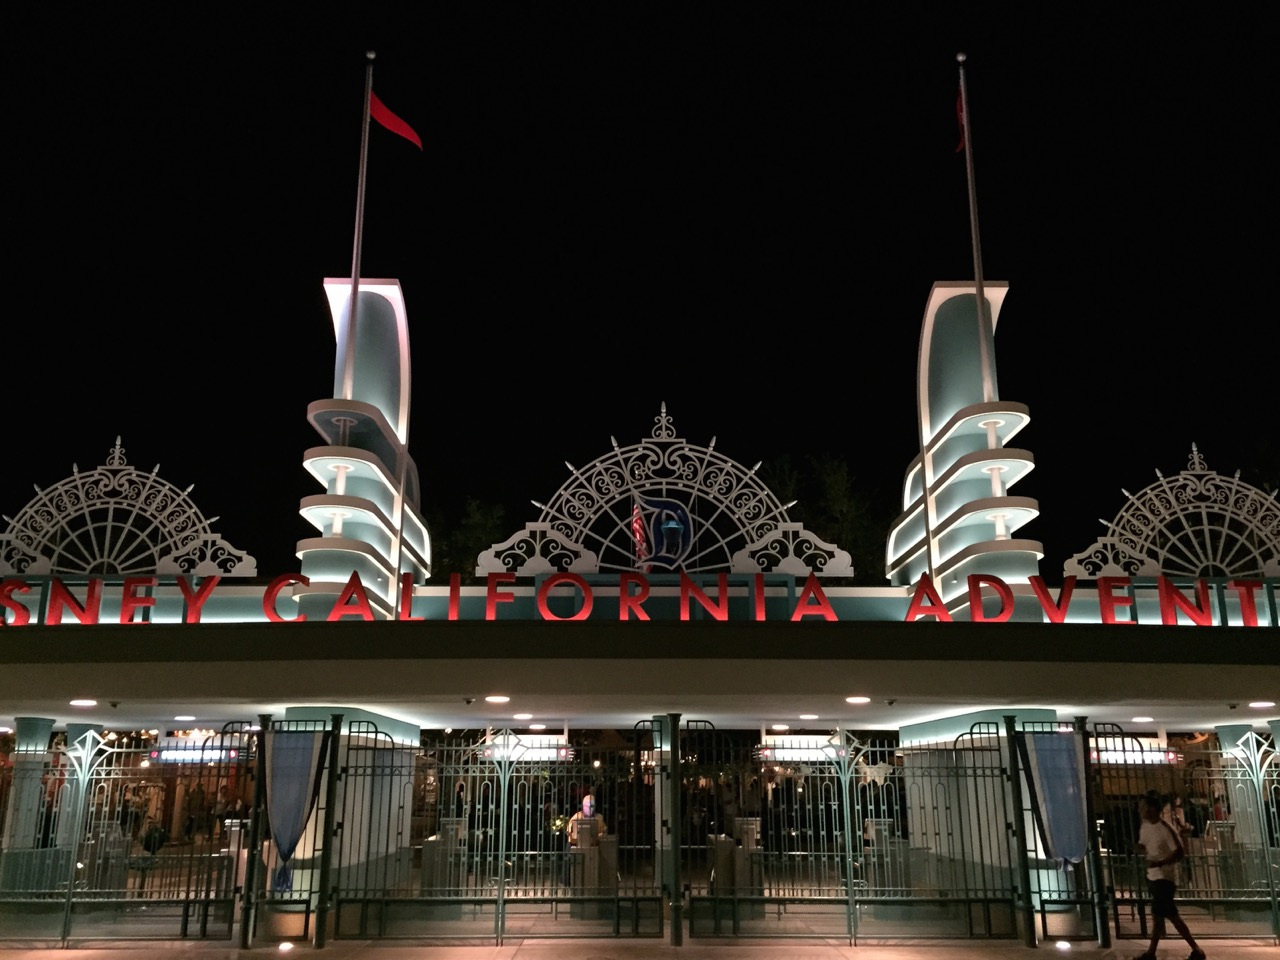 The park's entrance celebrating Disneyland's Diamond Jubilee. Photo by J. Jeff Kober.